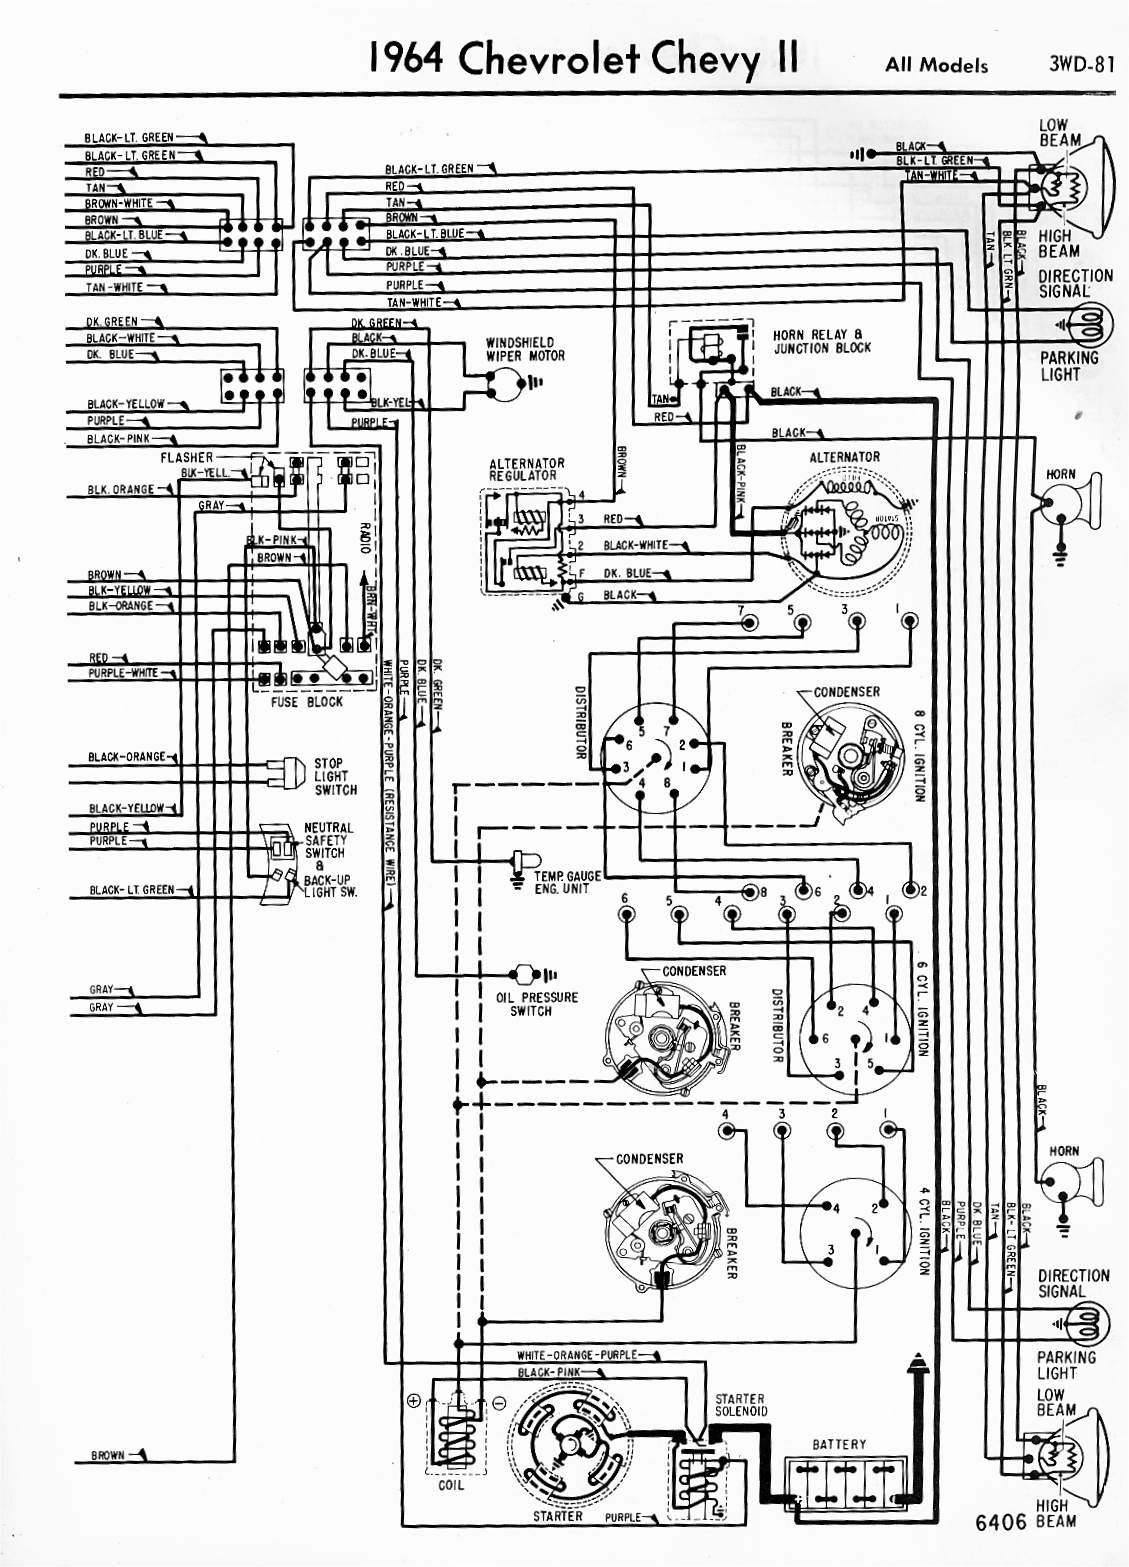 1969 c20 wiring harness diy wiring diagrams u2022 rh socialadder co 1969 Chevy C20 Truck Parts 1969 C20 4x4